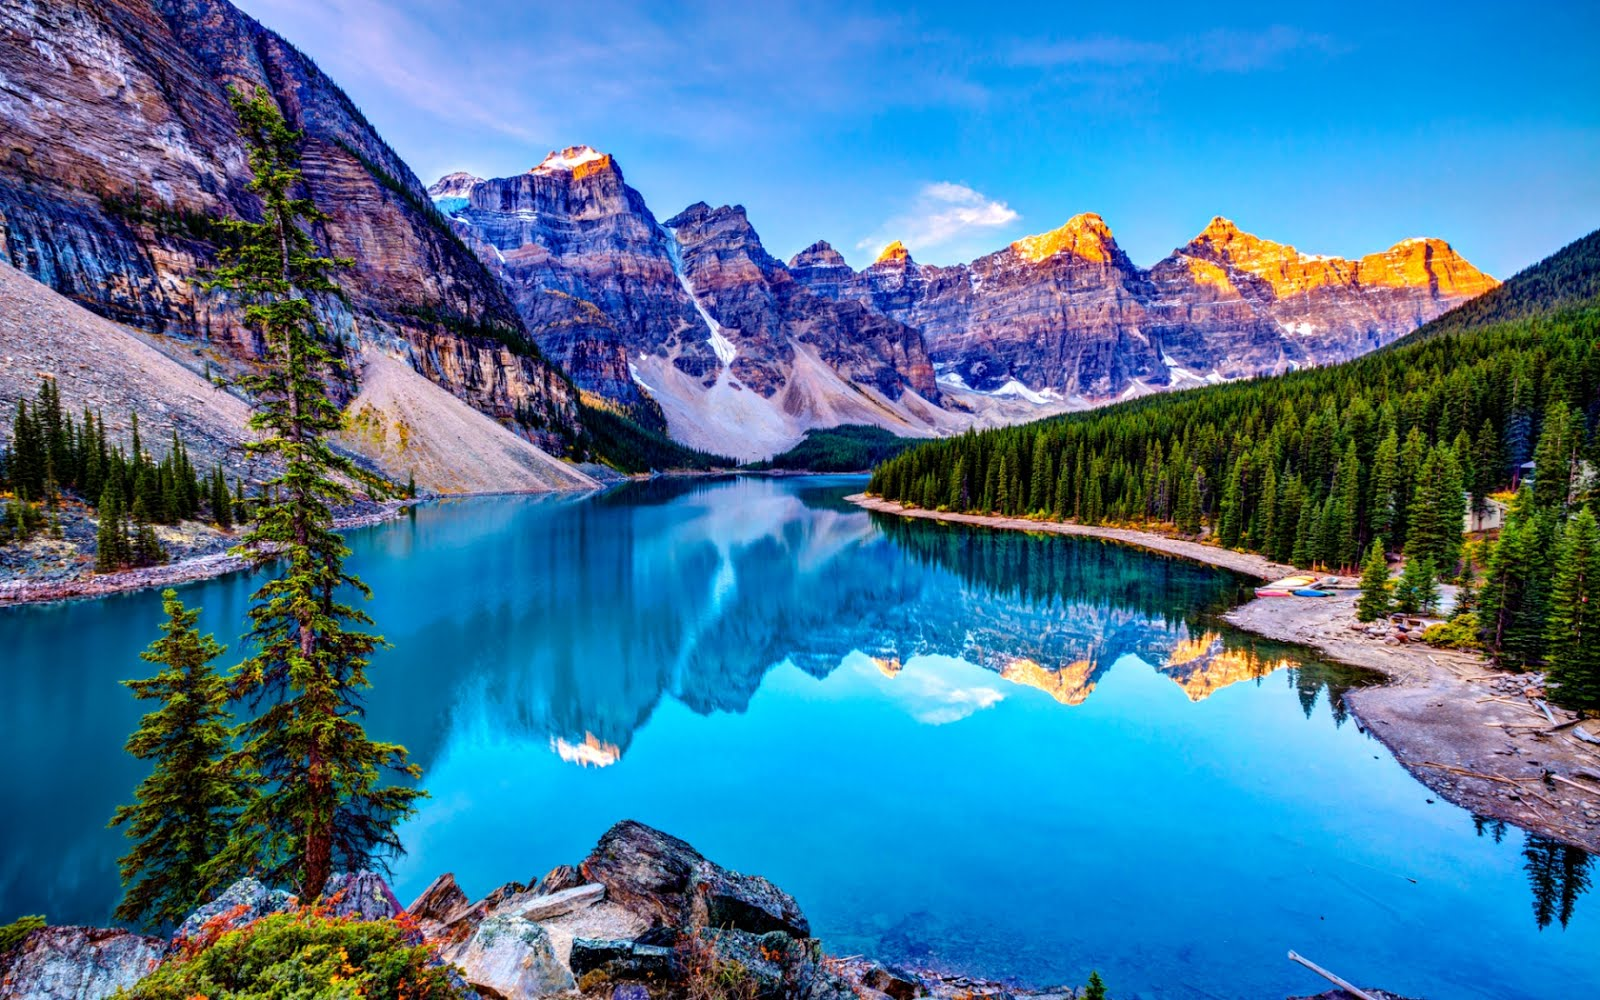 Moraine Lake Hd Desktop Wallpaper 1600x1000